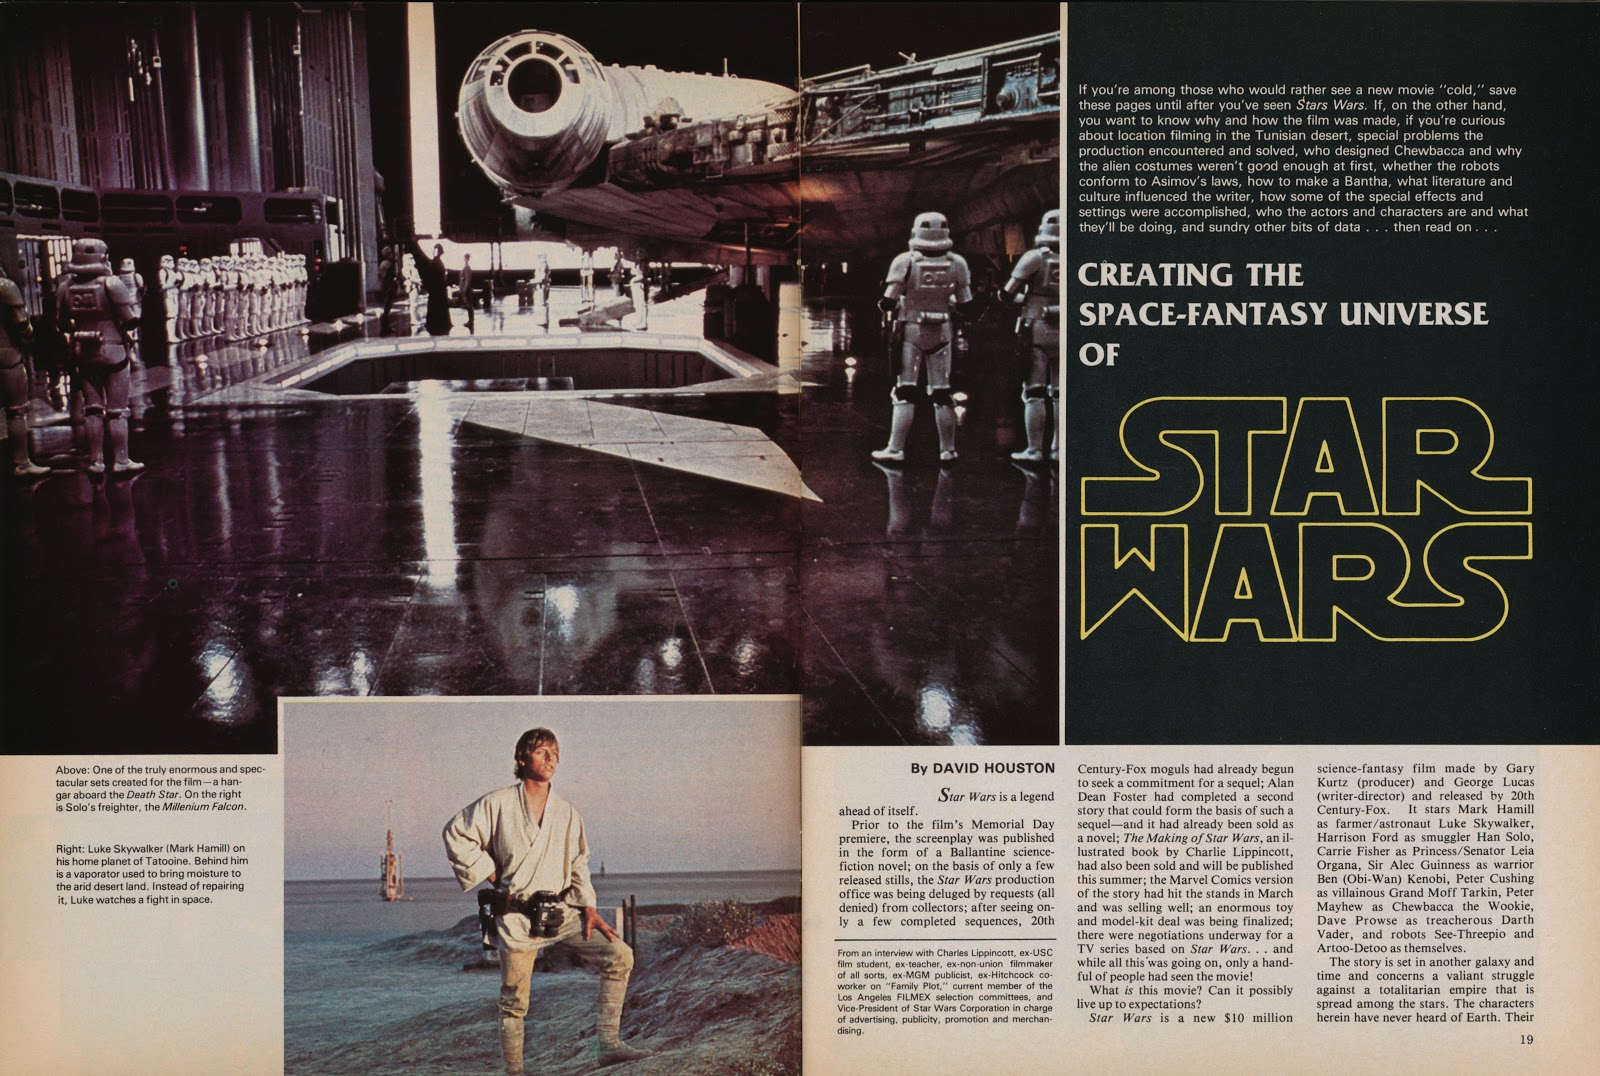 essays on star wars iv This essay is primarily about the role of pastiche or nostalgia in star wars' success it also discusses the growth of film throughout history, and the place of postmodernism in film history.